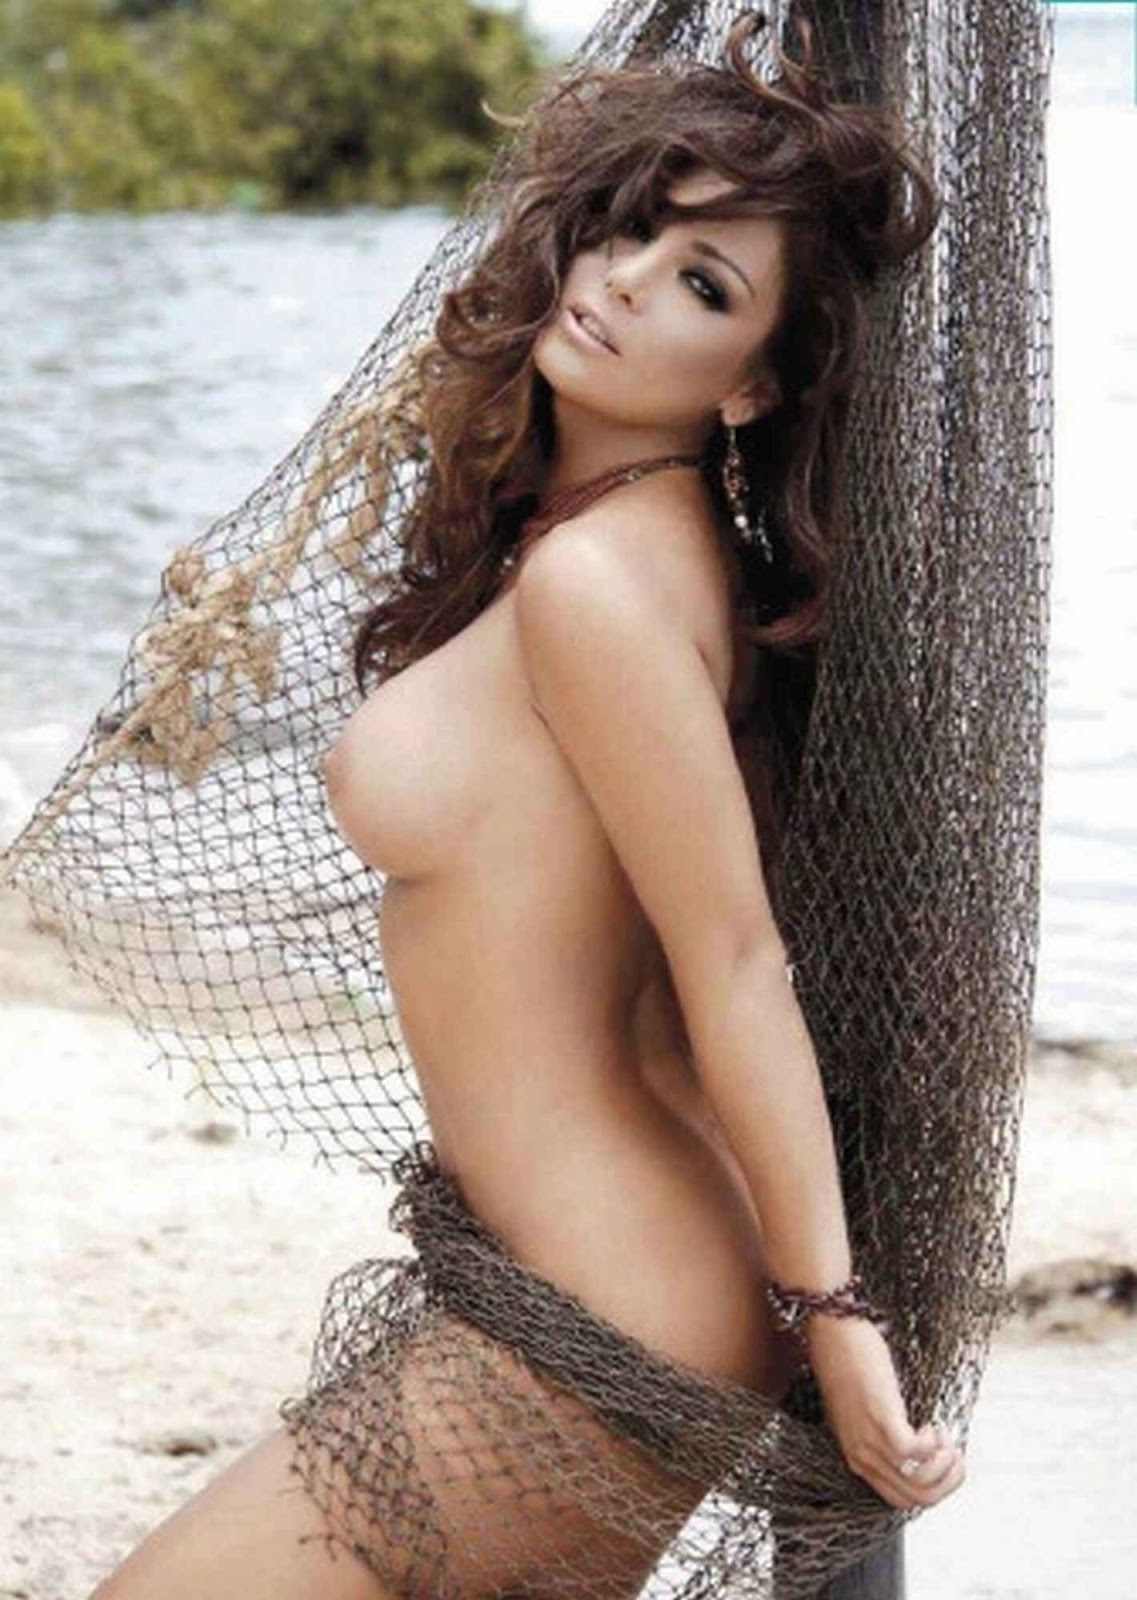 melissa song naked playboy